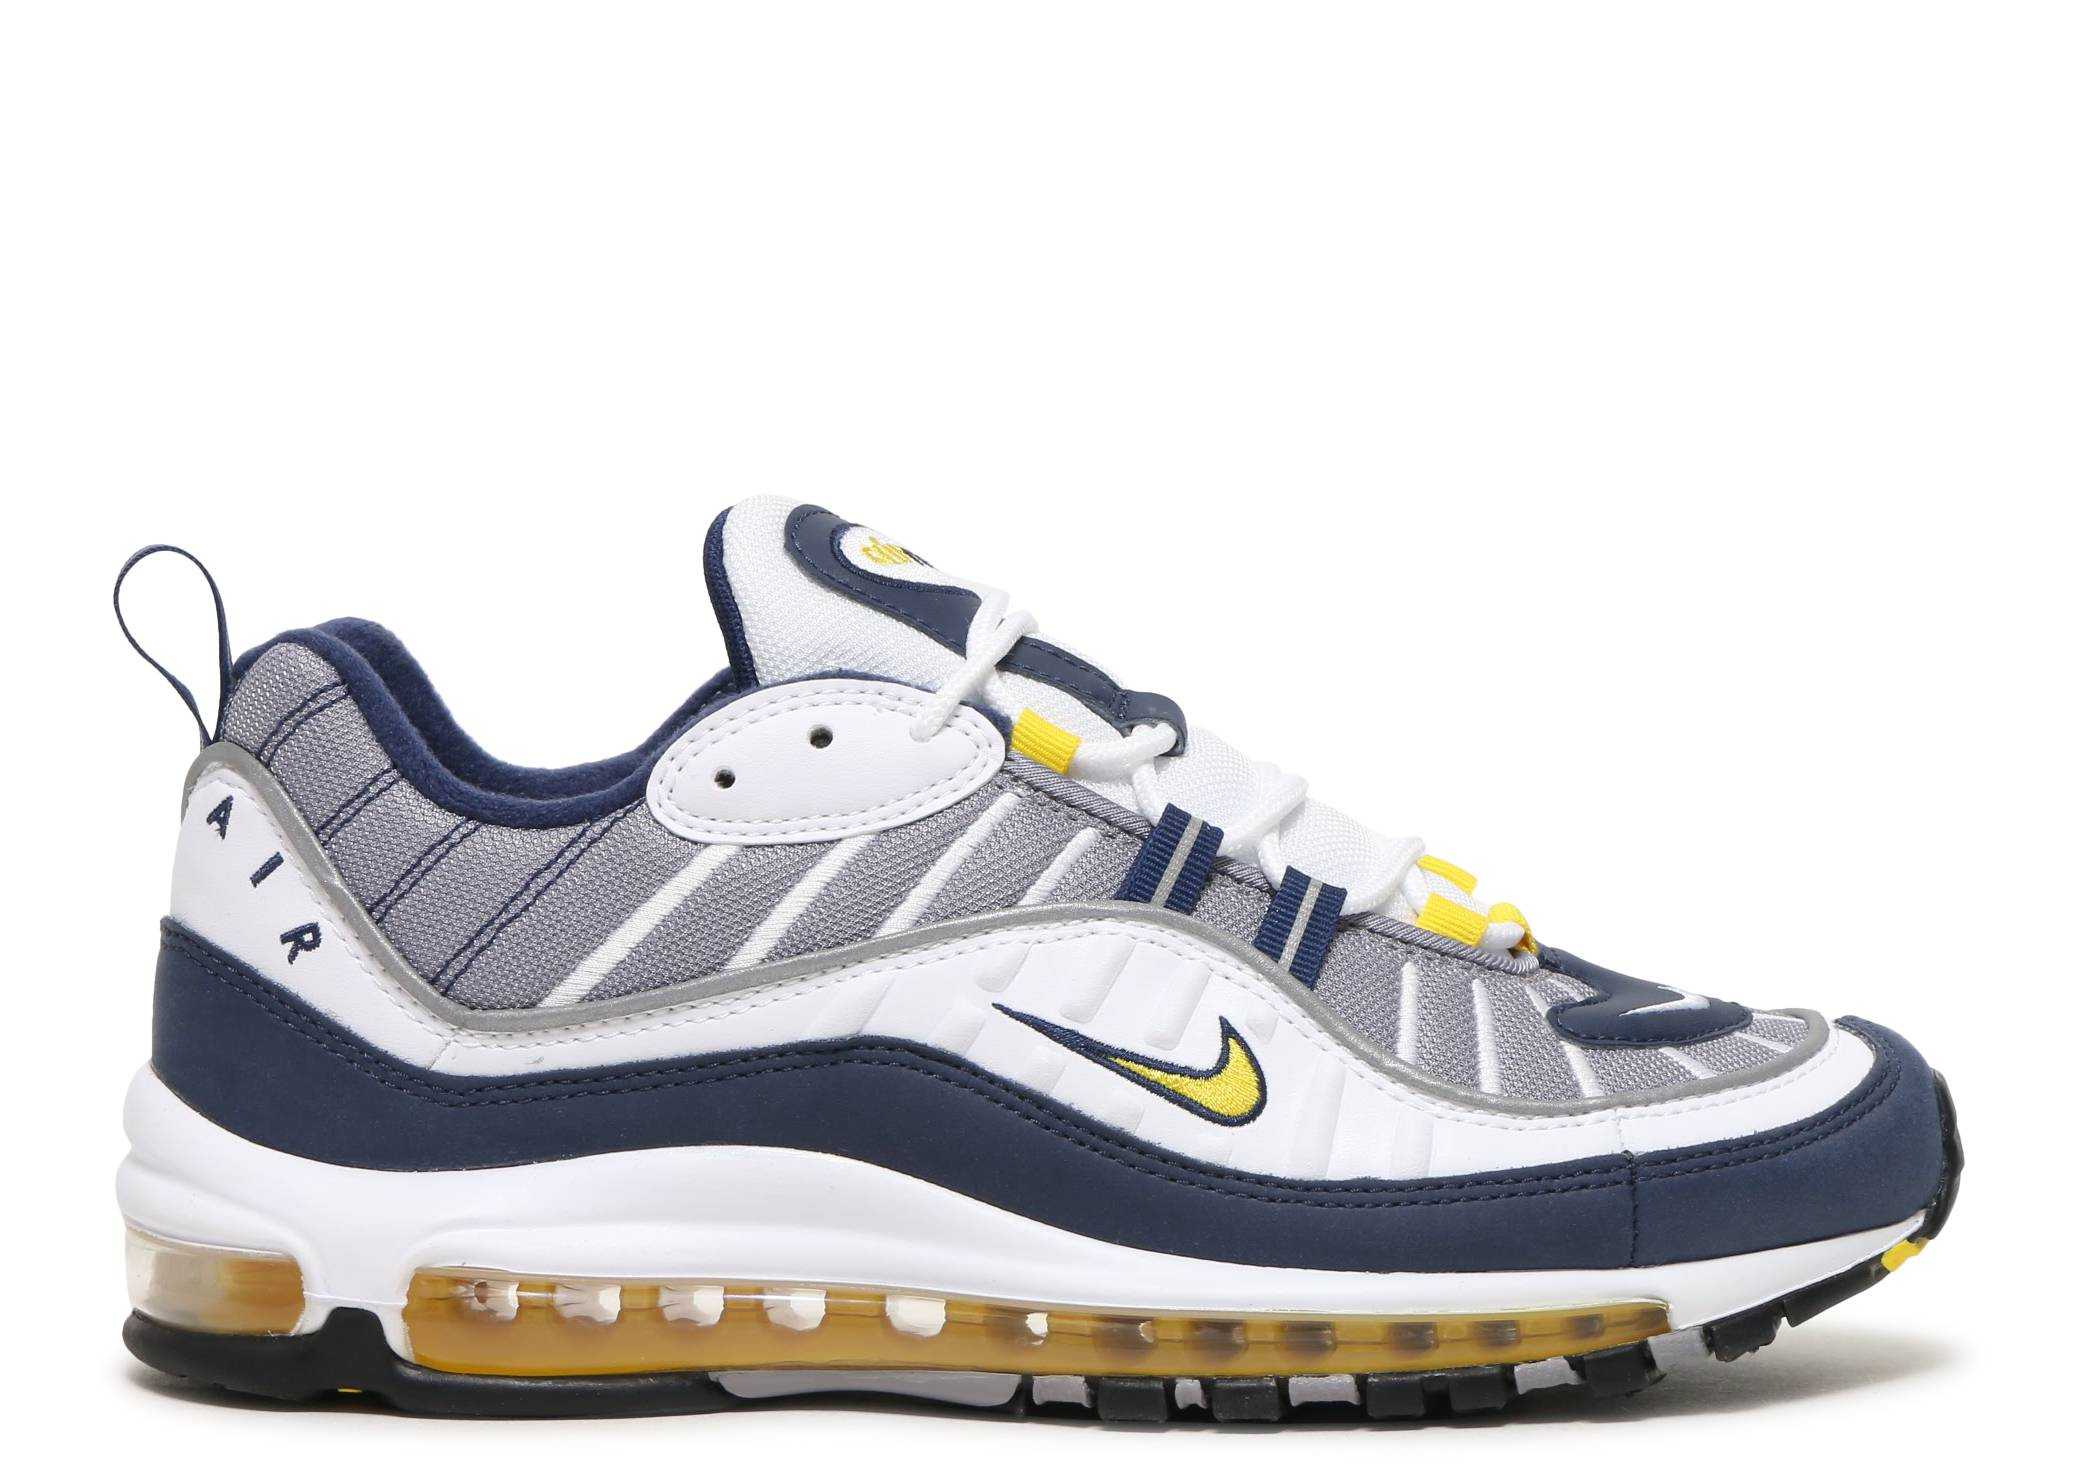 76b78120981 AIr Max 98 - Nike - 640744 105 - white tour yellow-midnight navy ...